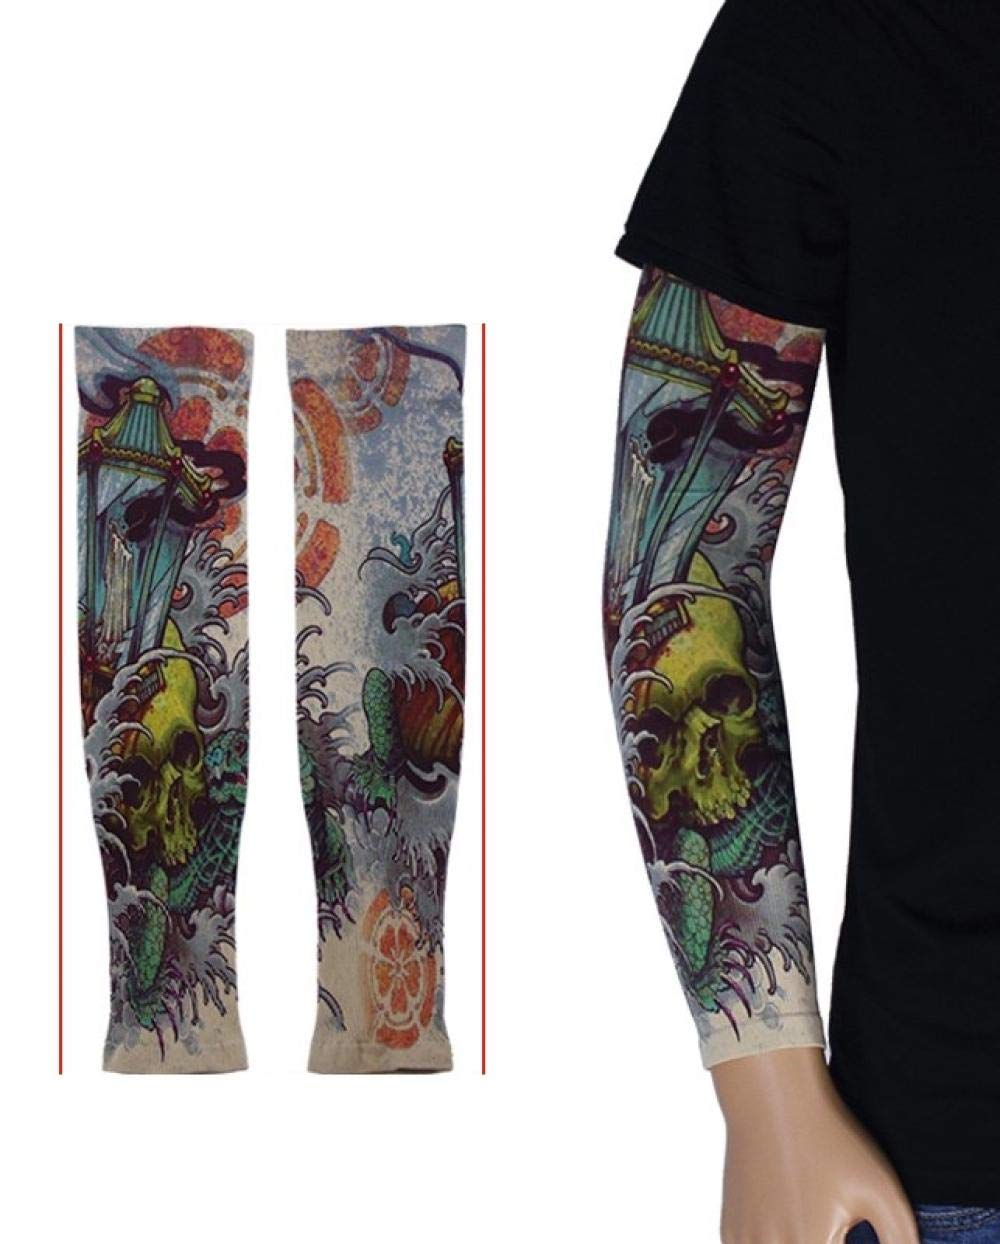 Ffooxxii Covering Tattoo Artifact Arm Set Men's Sun Protection Sleeve Driving Ice Cool Riding Armband Lady Summer Outdoor Flower Arm@One size_372